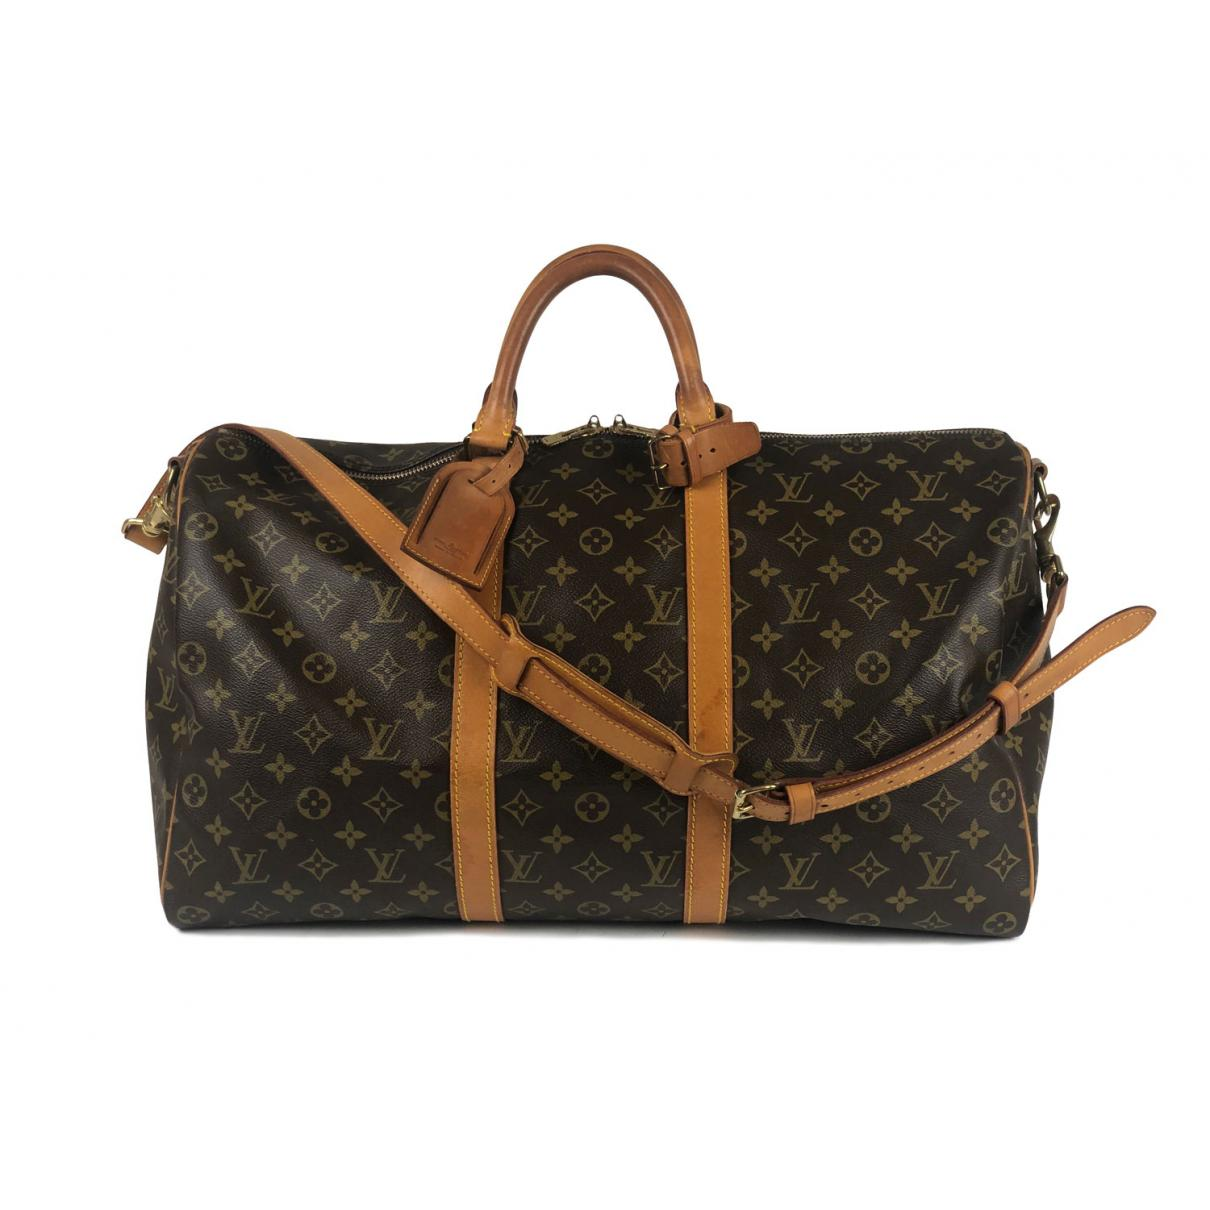 Lyst - Louis Vuitton Pre-owned Vintage Keepall Brown Cloth Bag in ... 0b42242a267bb